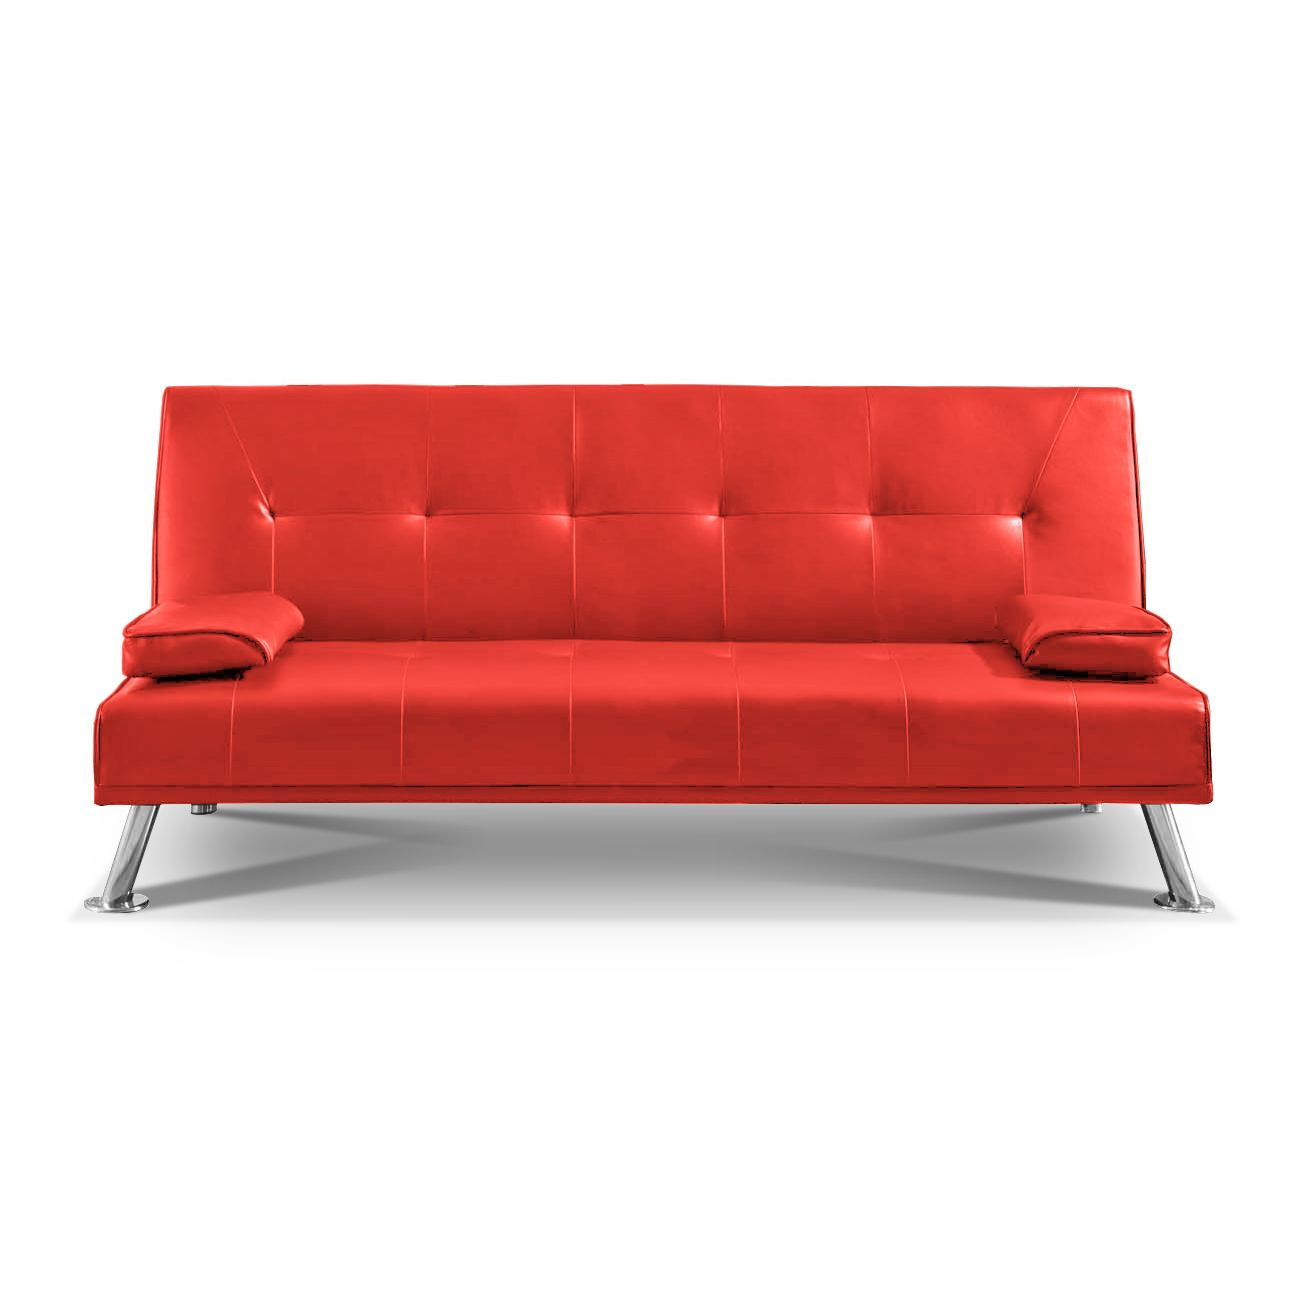 Jana Sofa Bed – Next Day Delivery Jana Sofa Bed